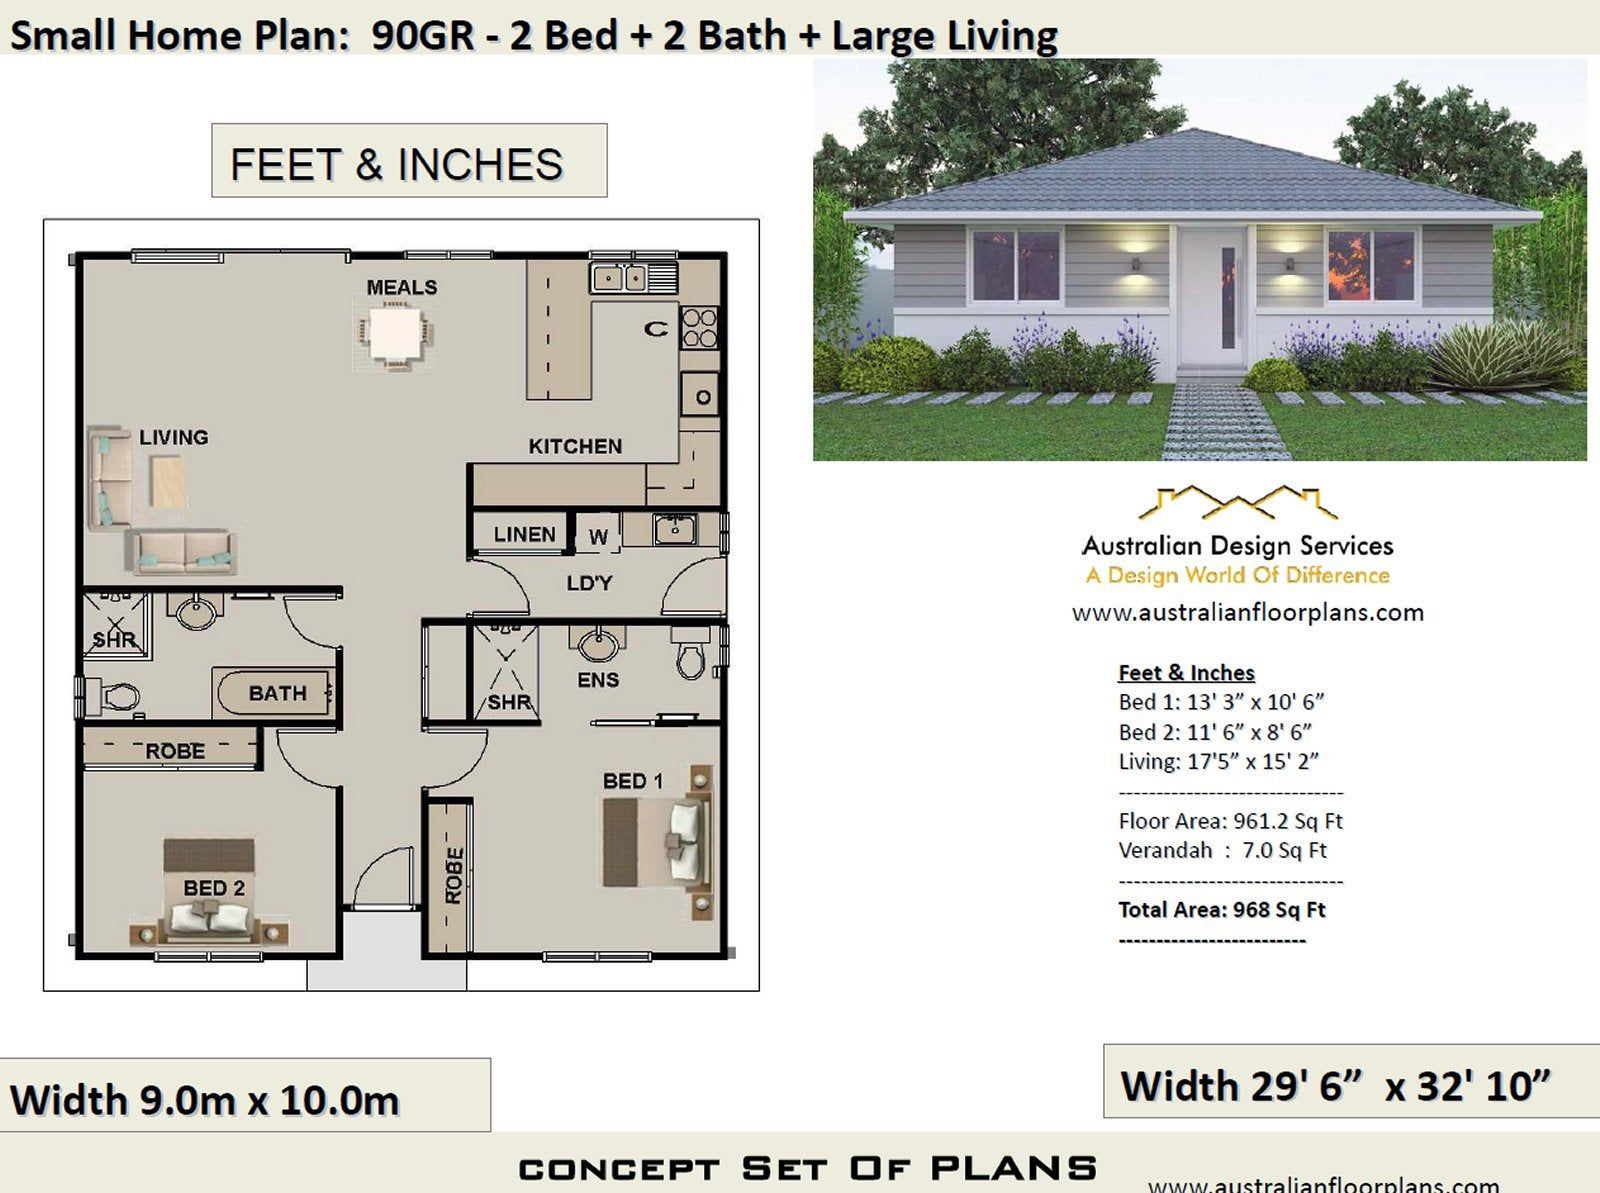 2 Bedroom House Plan 968 Sq Feet Or 90 M2 2 Small Home Etsy House Plans Australia House Plans For Sale House Plans Farmhouse